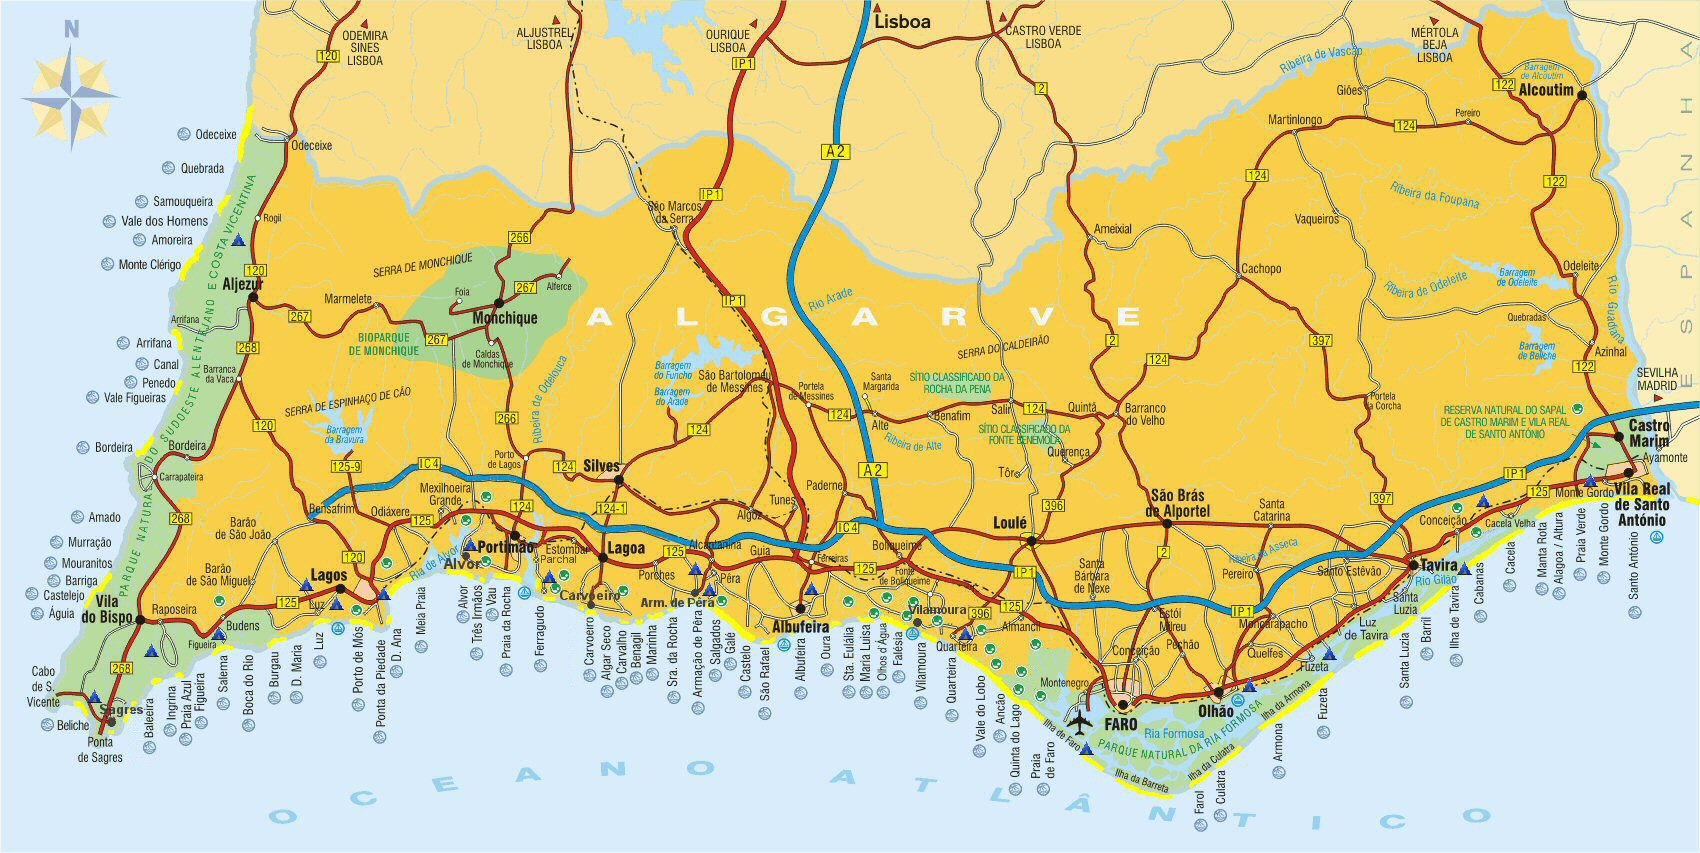 algarve kartta Map of the Algarve | ALGARVE UPDATE algarve kartta